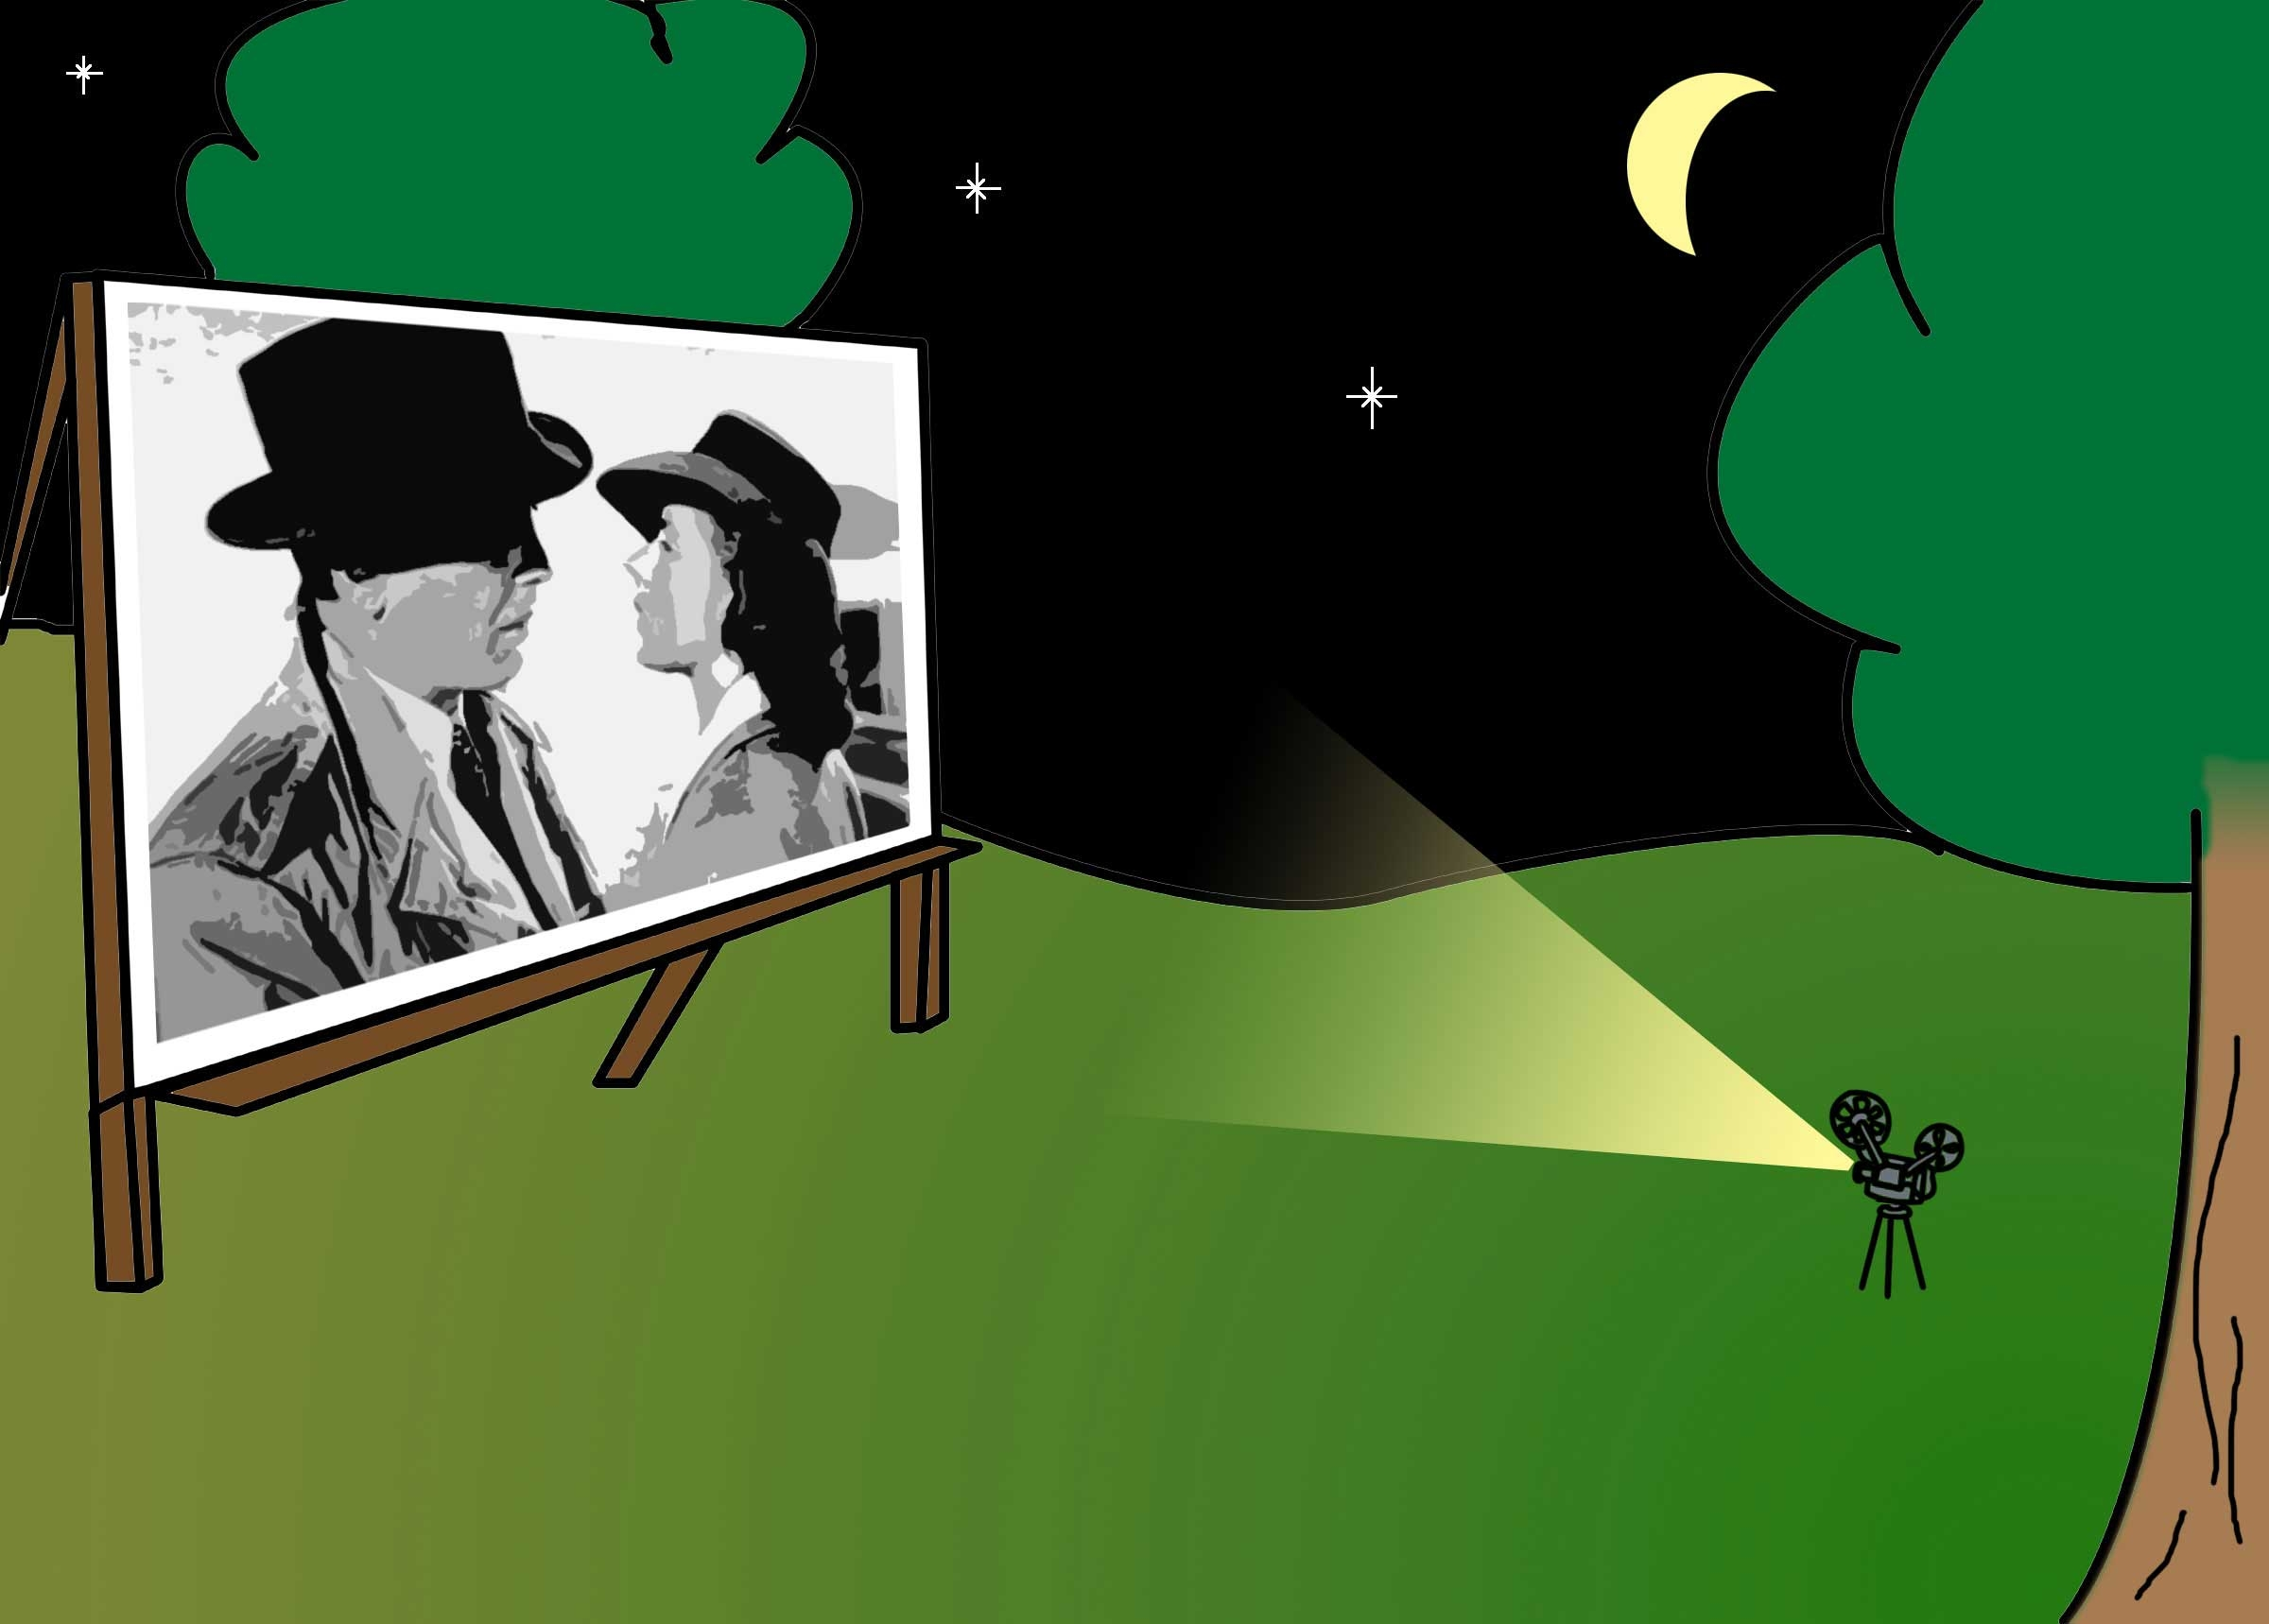 Outdoor movie screen clipart banner library download Free Movie Display Cliparts, Download Free Clip Art, Free ... banner library download